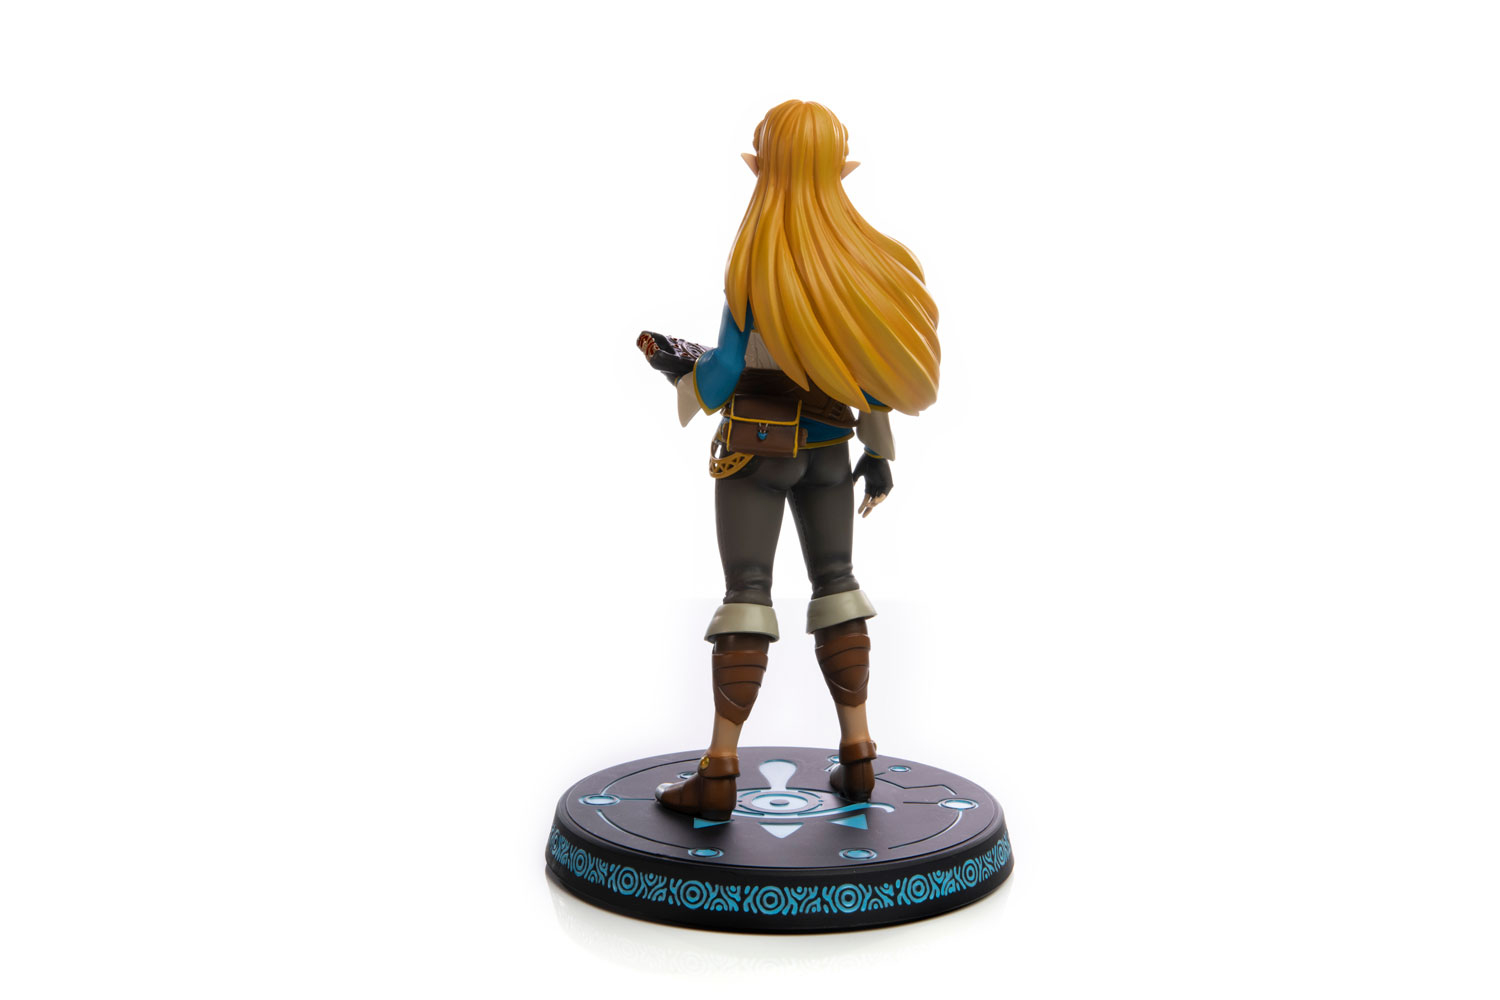 Zelda The Legend of Zelda Breath of the Wild Figure